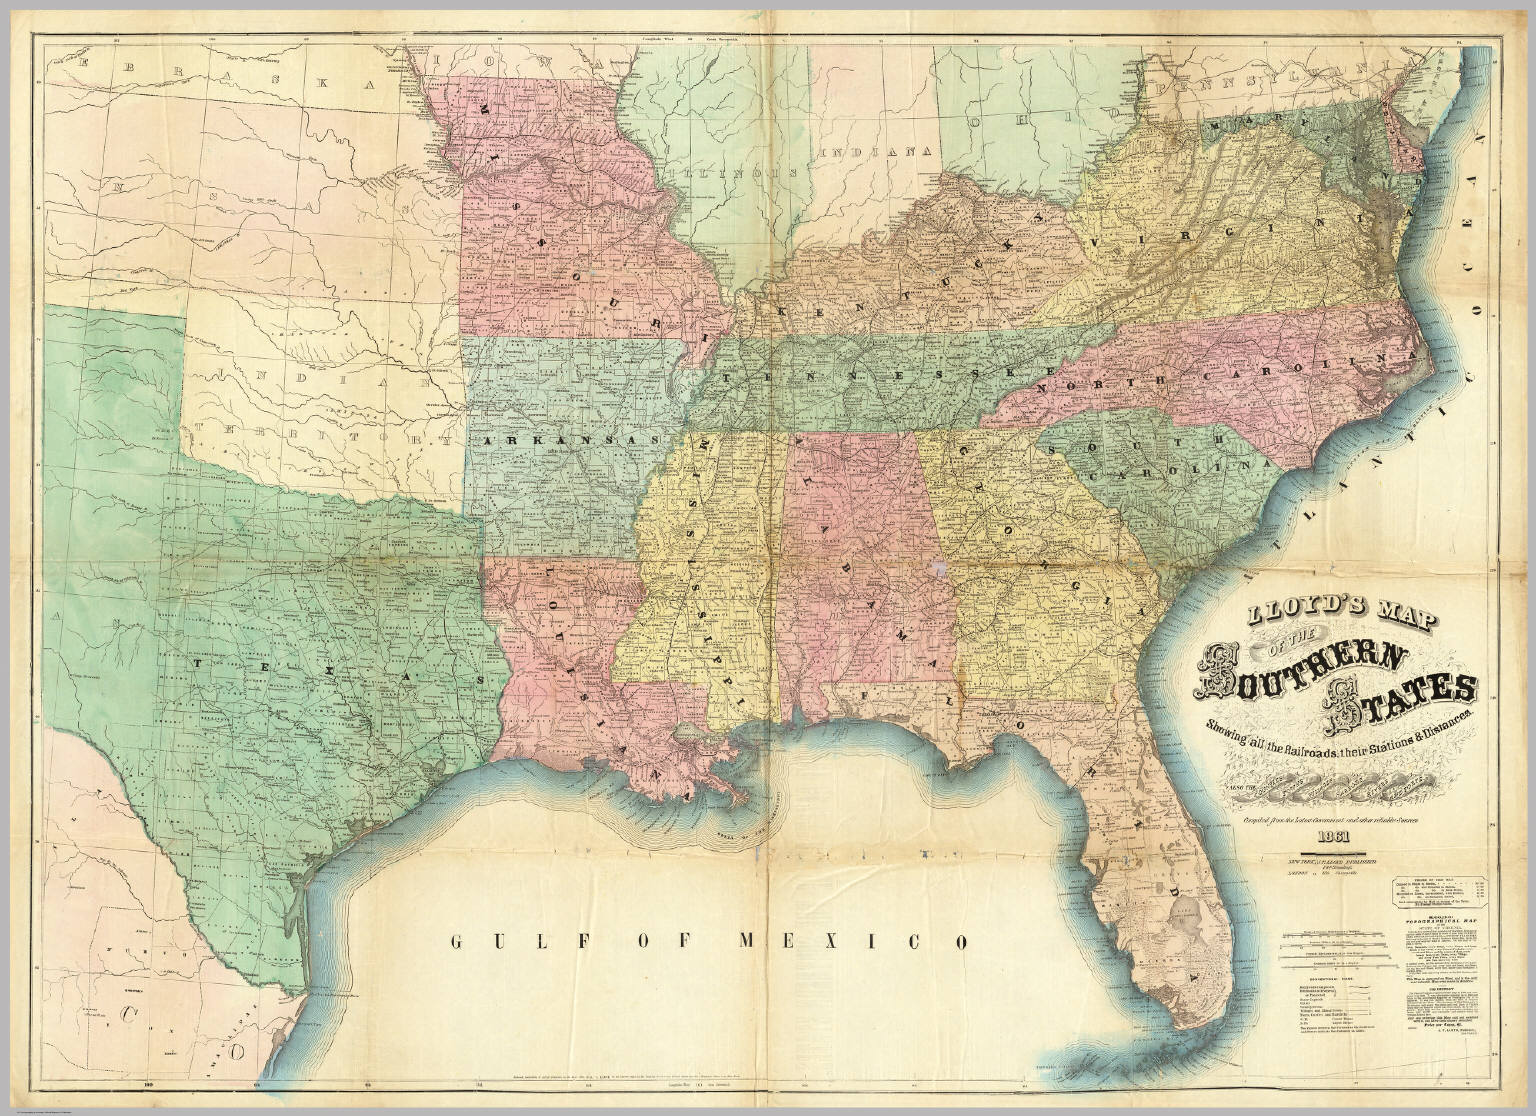 Lloyd's Map Of The Southern States. / Lloyd, J.T. / 1861